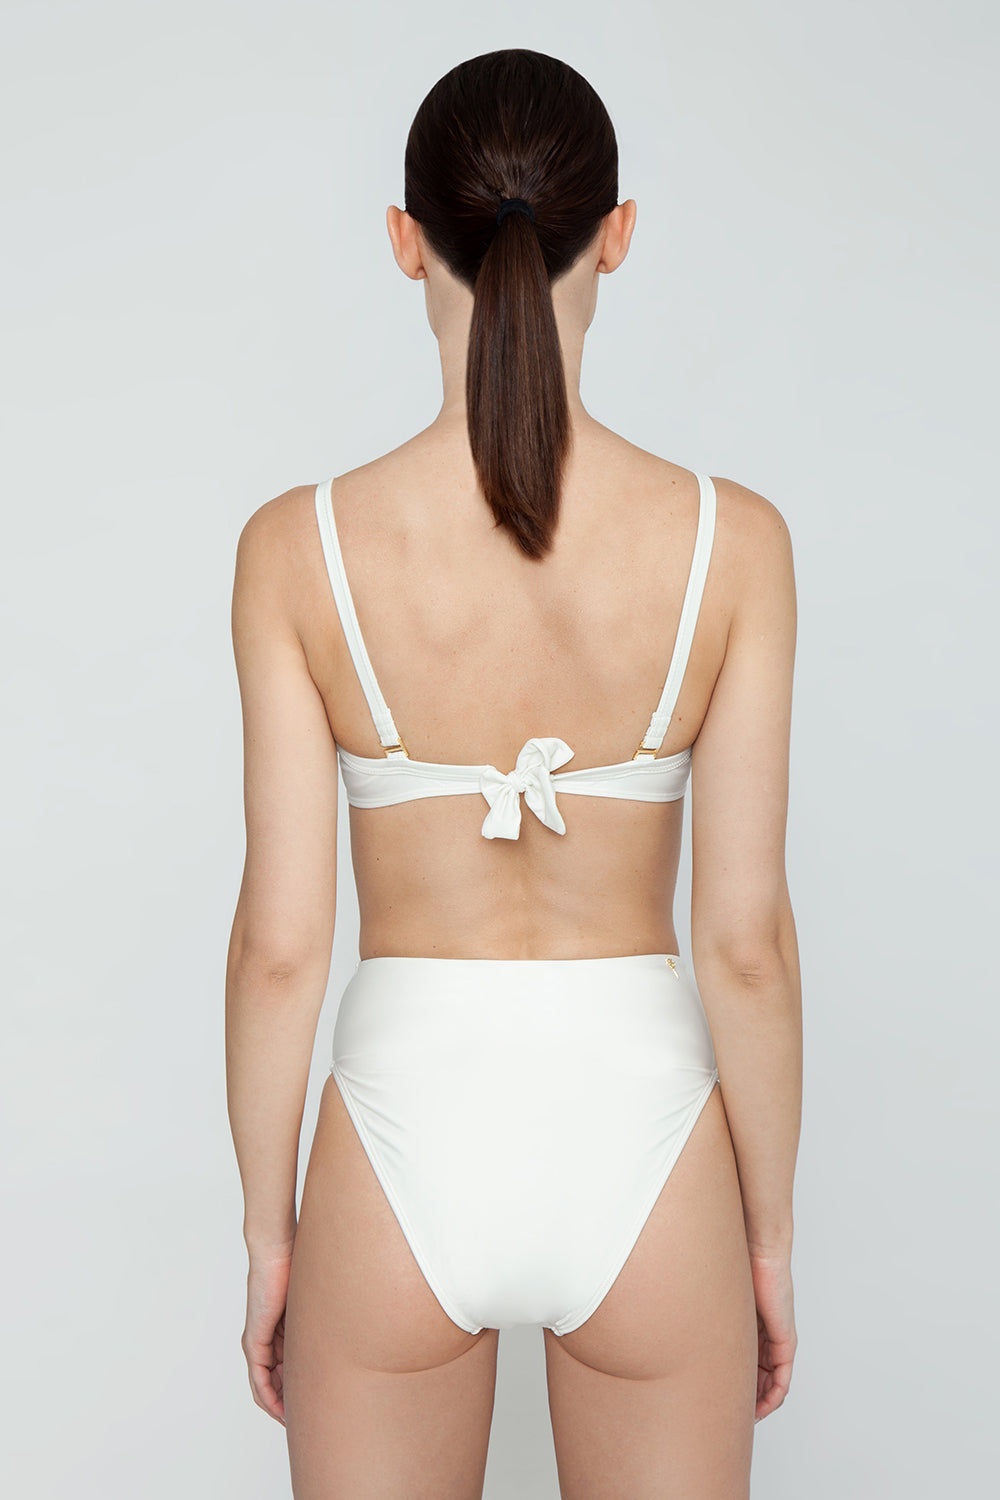 AGUA DE COCO Brazilian High Waist Bikini Bottom - Off White Bikini Bottom | Off White| Agua De Coco Brazilian High Waist Bikini Bottom - Off White White bikini bottom High waist High cut leg Cheeky coverage Back View